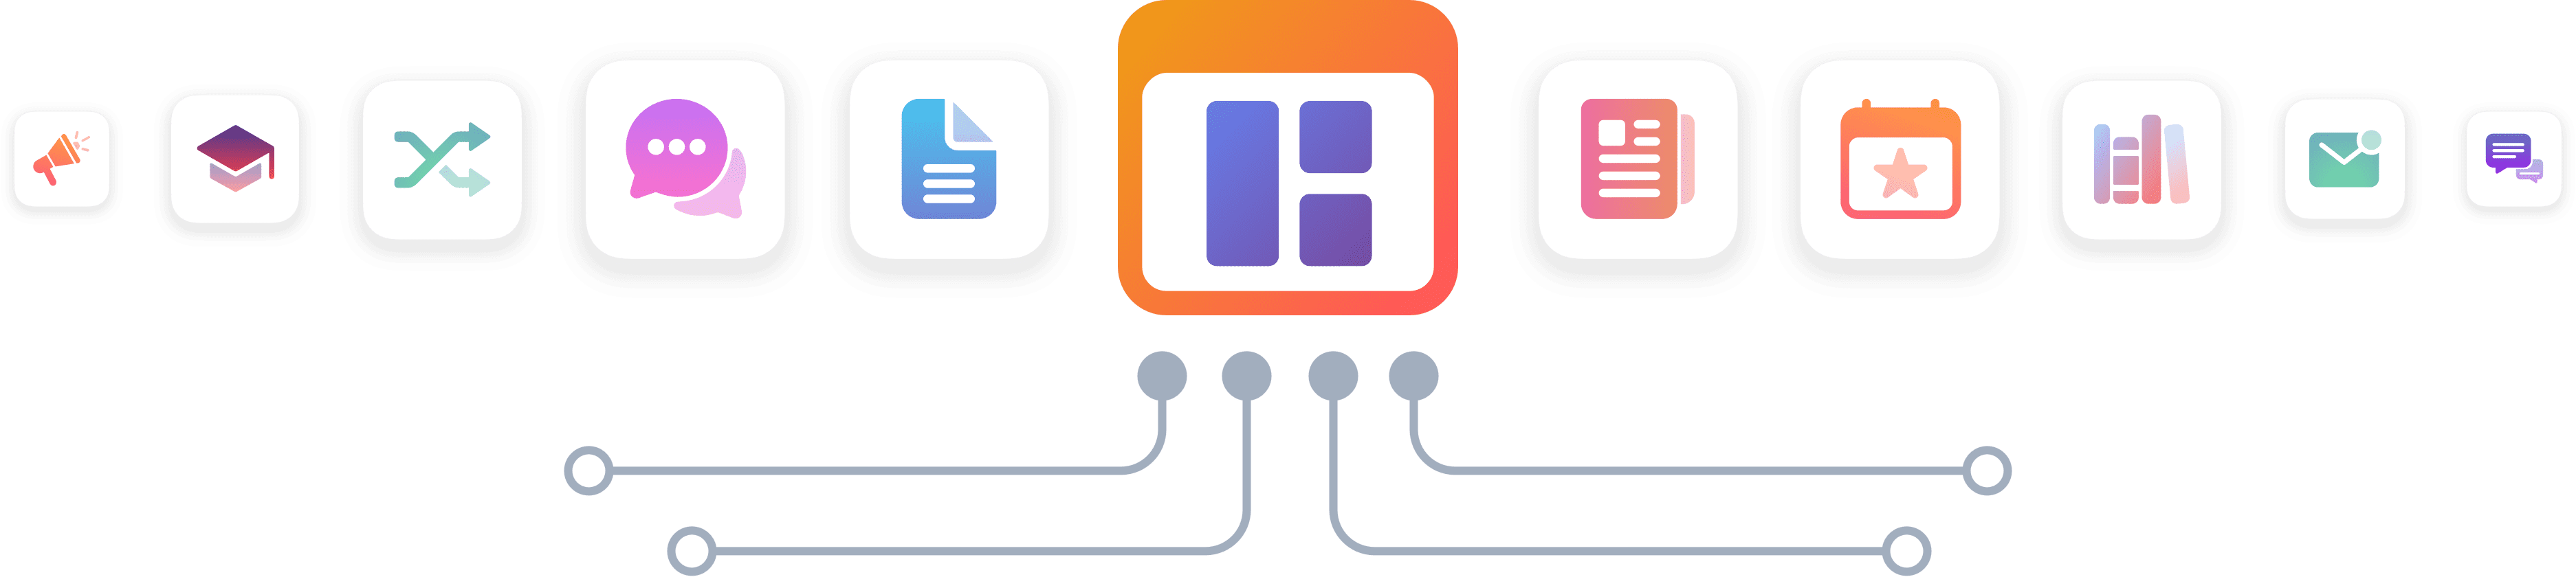 icons-line-with-site-and-lines